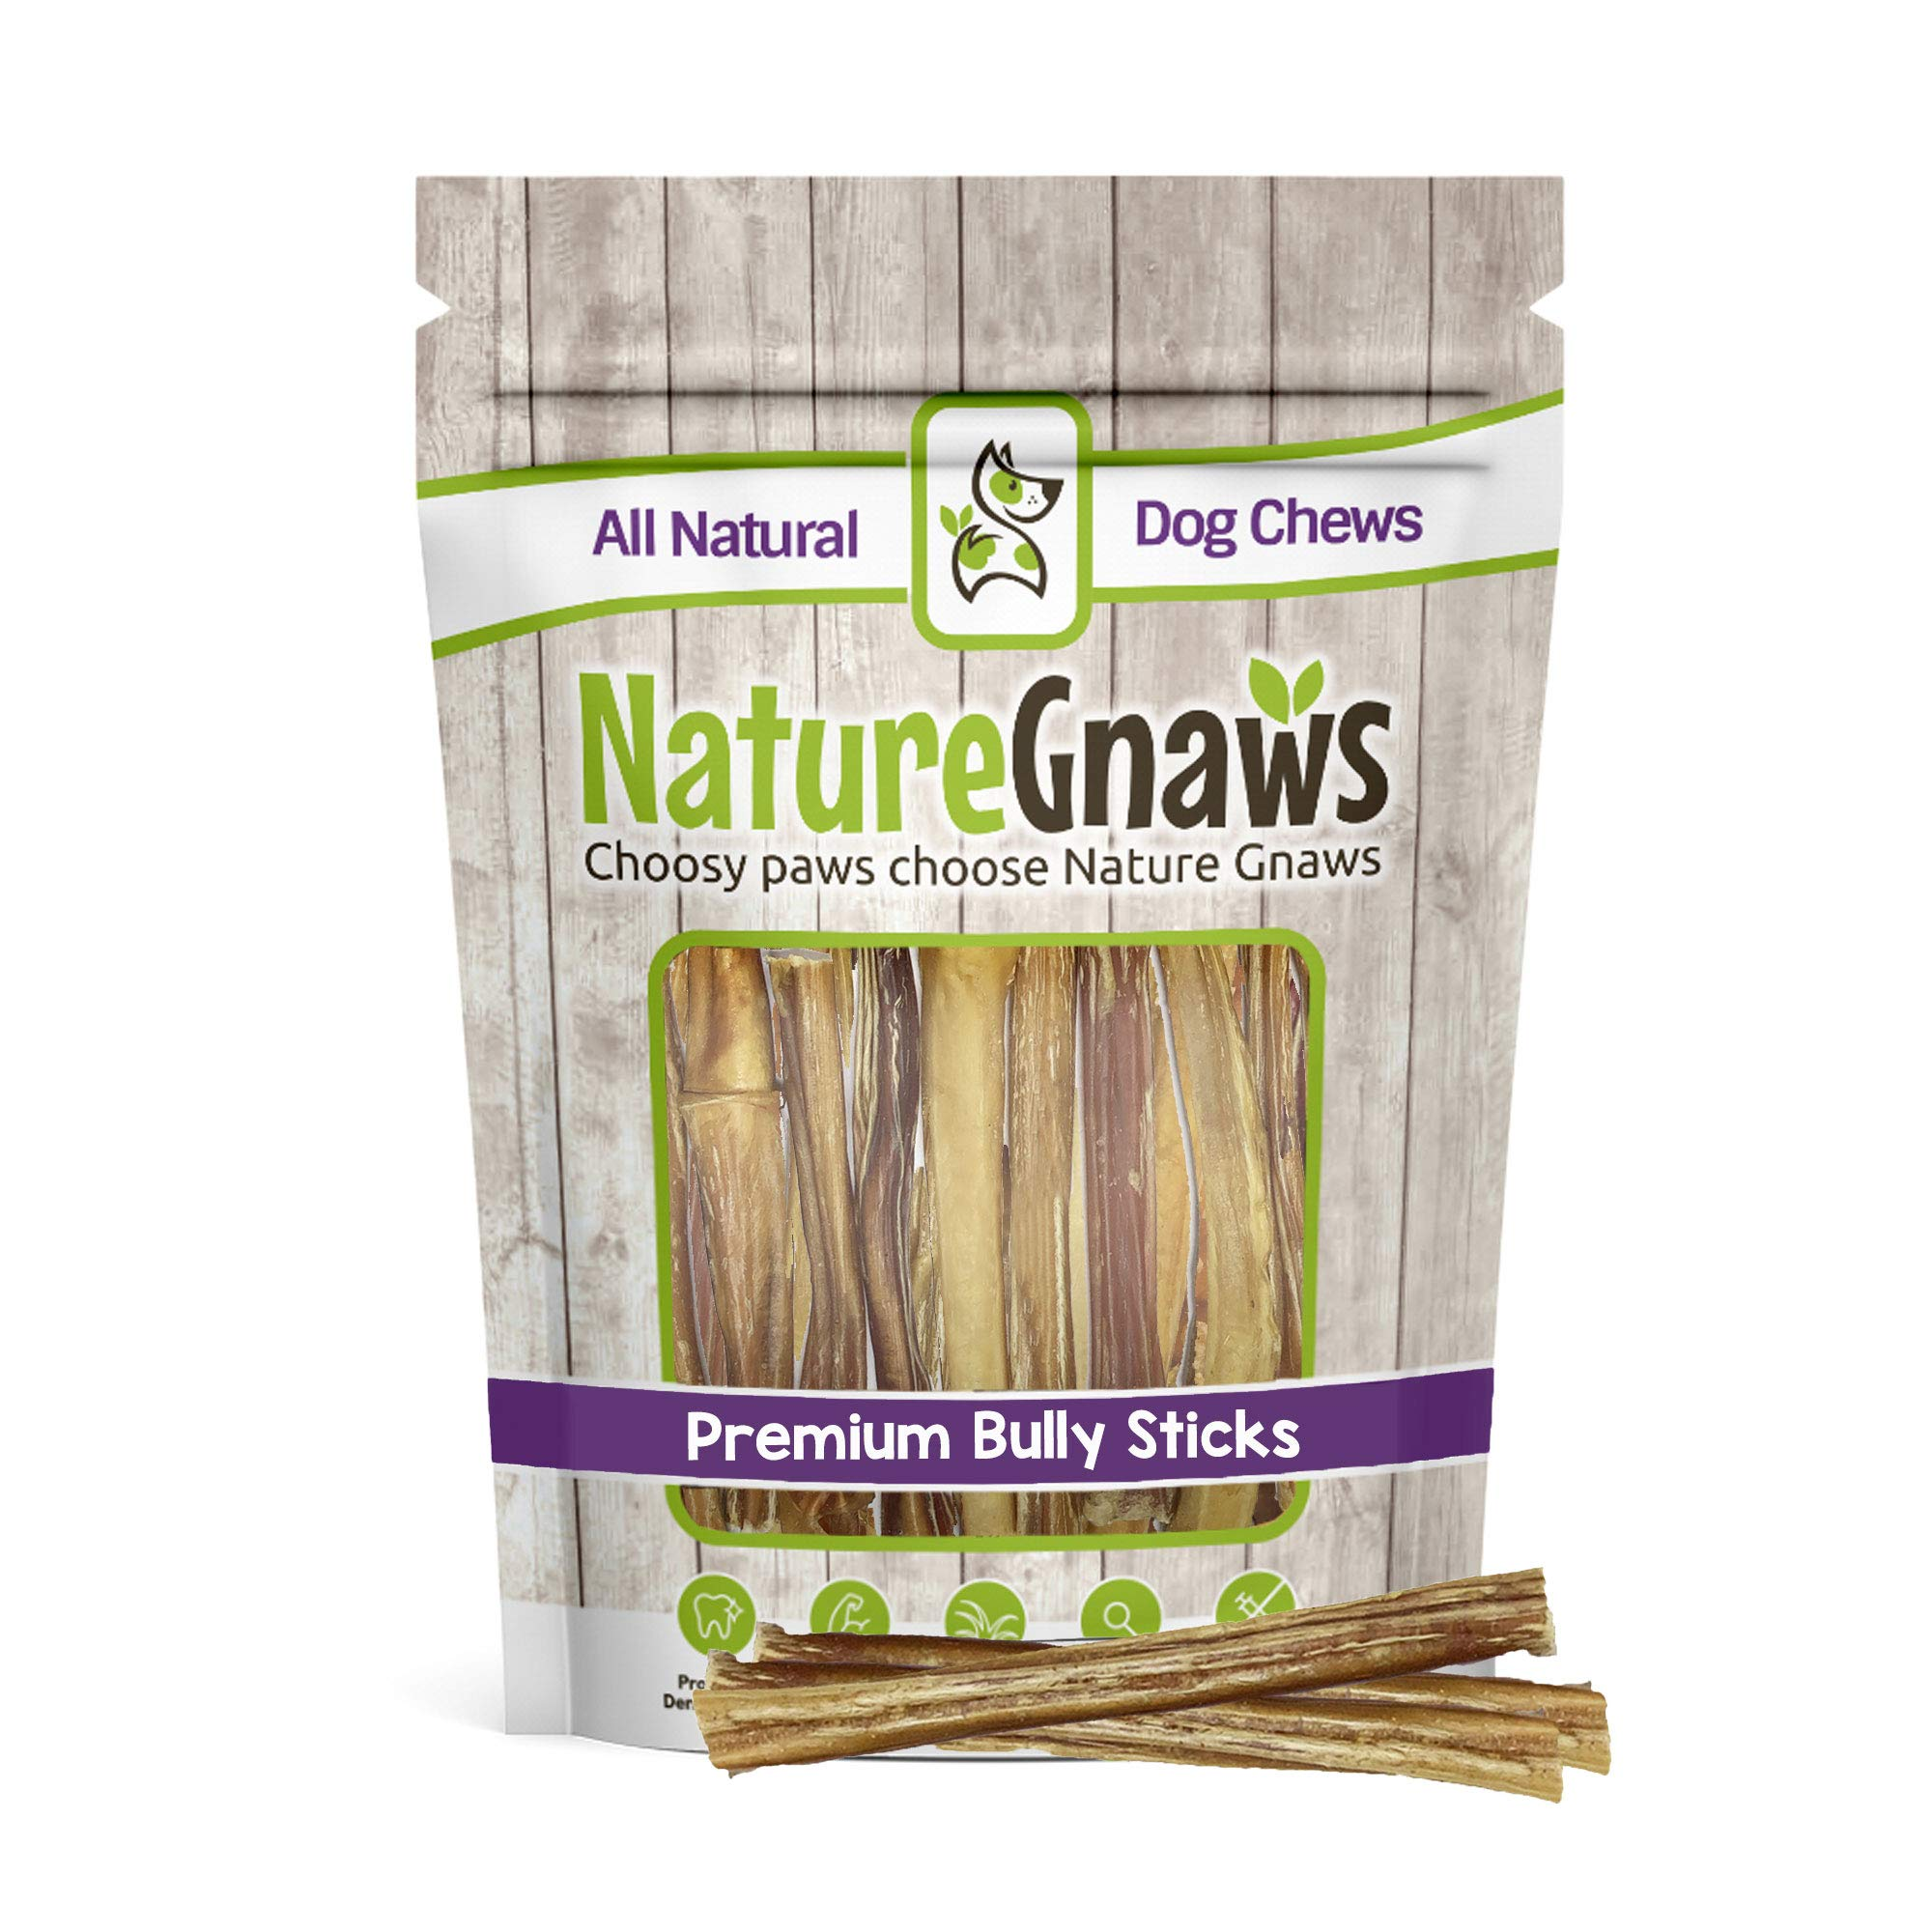 Nature Gnaws Small Bully Sticks 5-6 inch (5 Pack) - 100% All-Natural Grass-Fed Free-Range Premium Beef Dog Chews